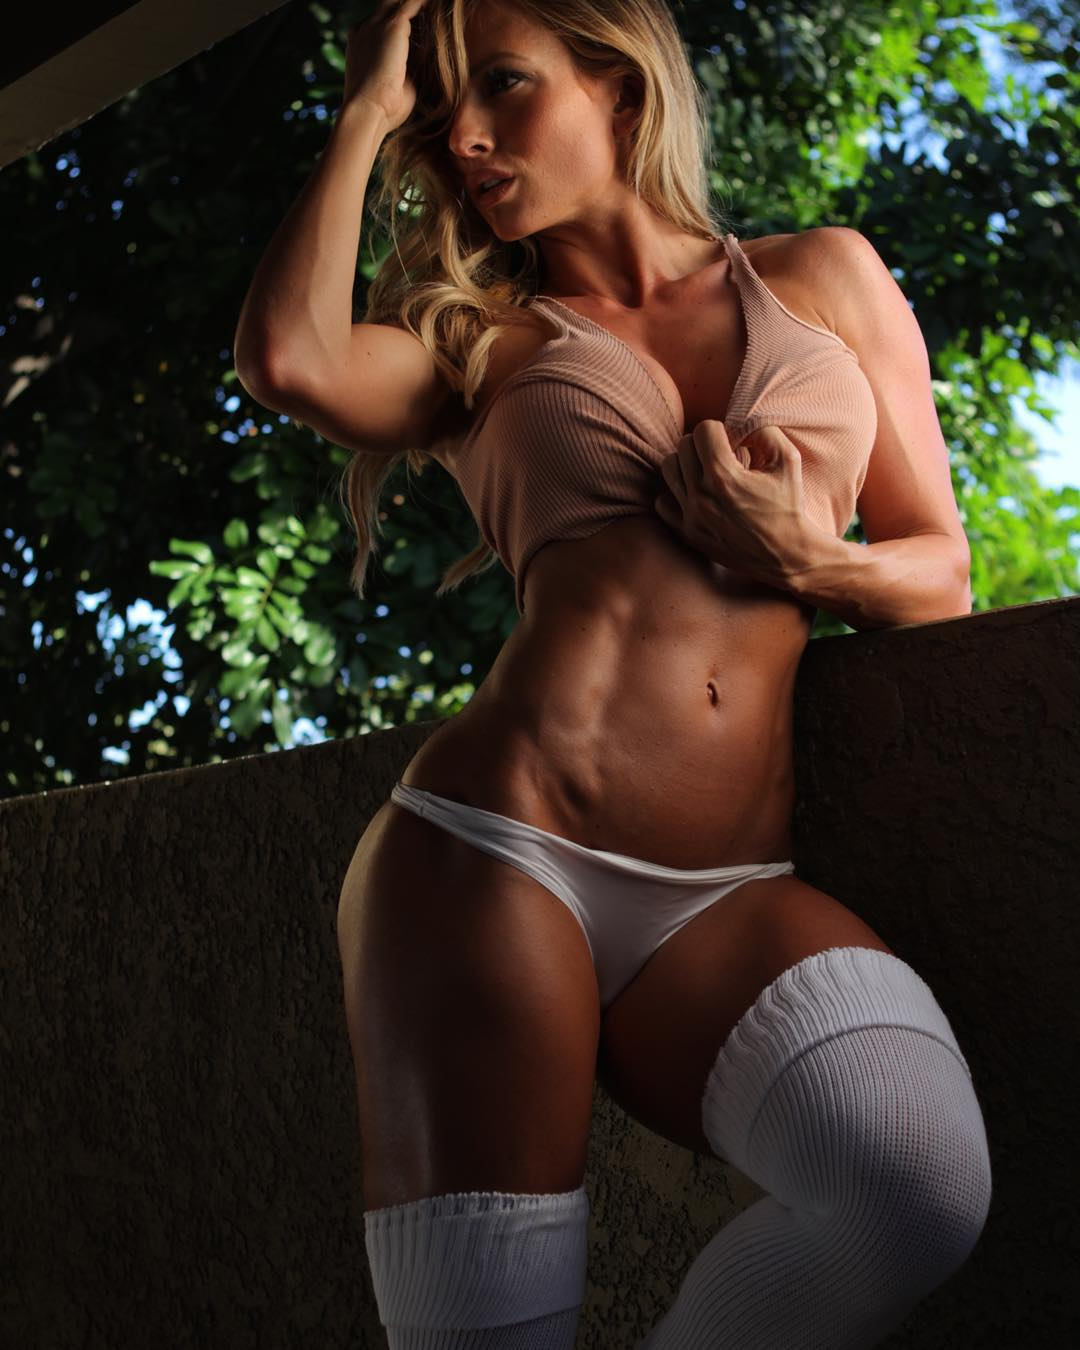 Paige Hathaway - Paige-Hathaway-136 - Great Muscle Bodies